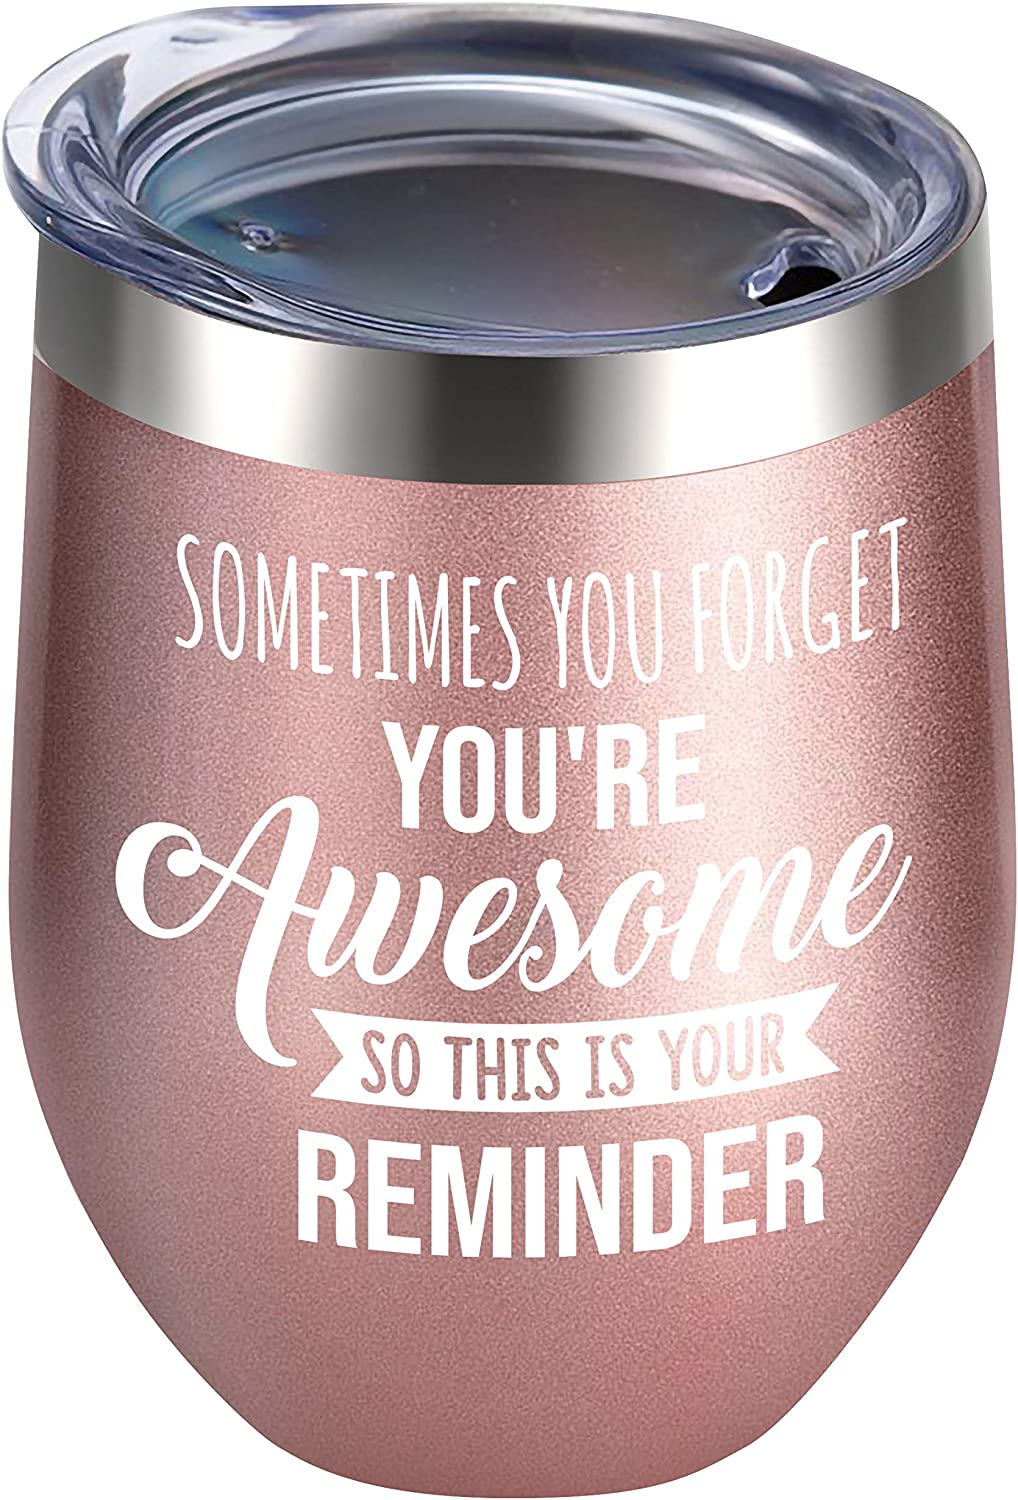 Alexanta Inspirational Gifts for Women - Congratulations Gifts for Women, Employee Appreciation Gifts, Encouragement Gifts for Women, Boss Gifts – Sometimes You Forget You're Awesome Wine Tumbler